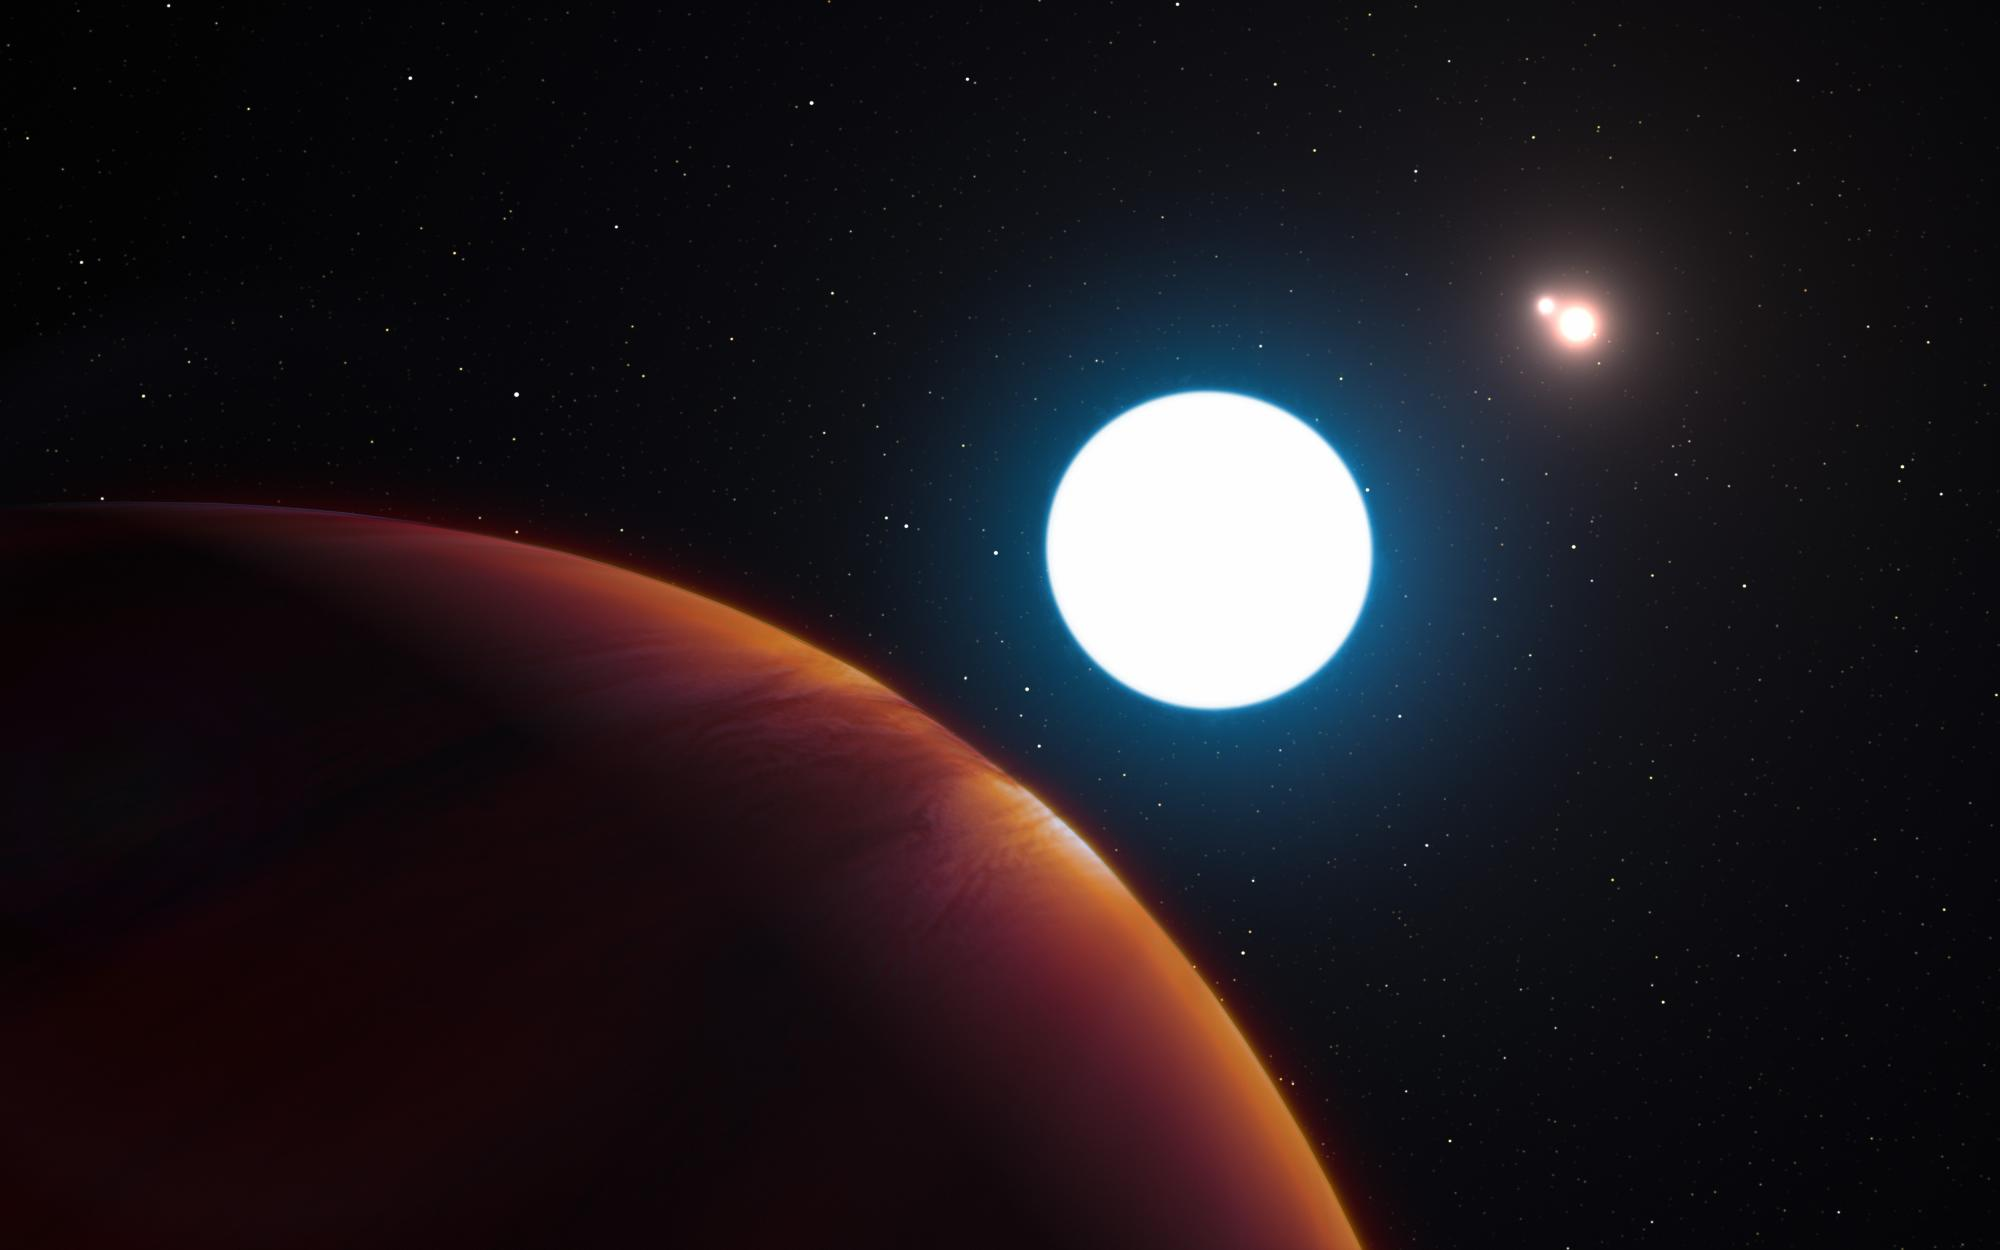 Triple sunrise: This artist's impression shows a view of the triple star system HD 131399 from close to the giant planet orbiting in the system.